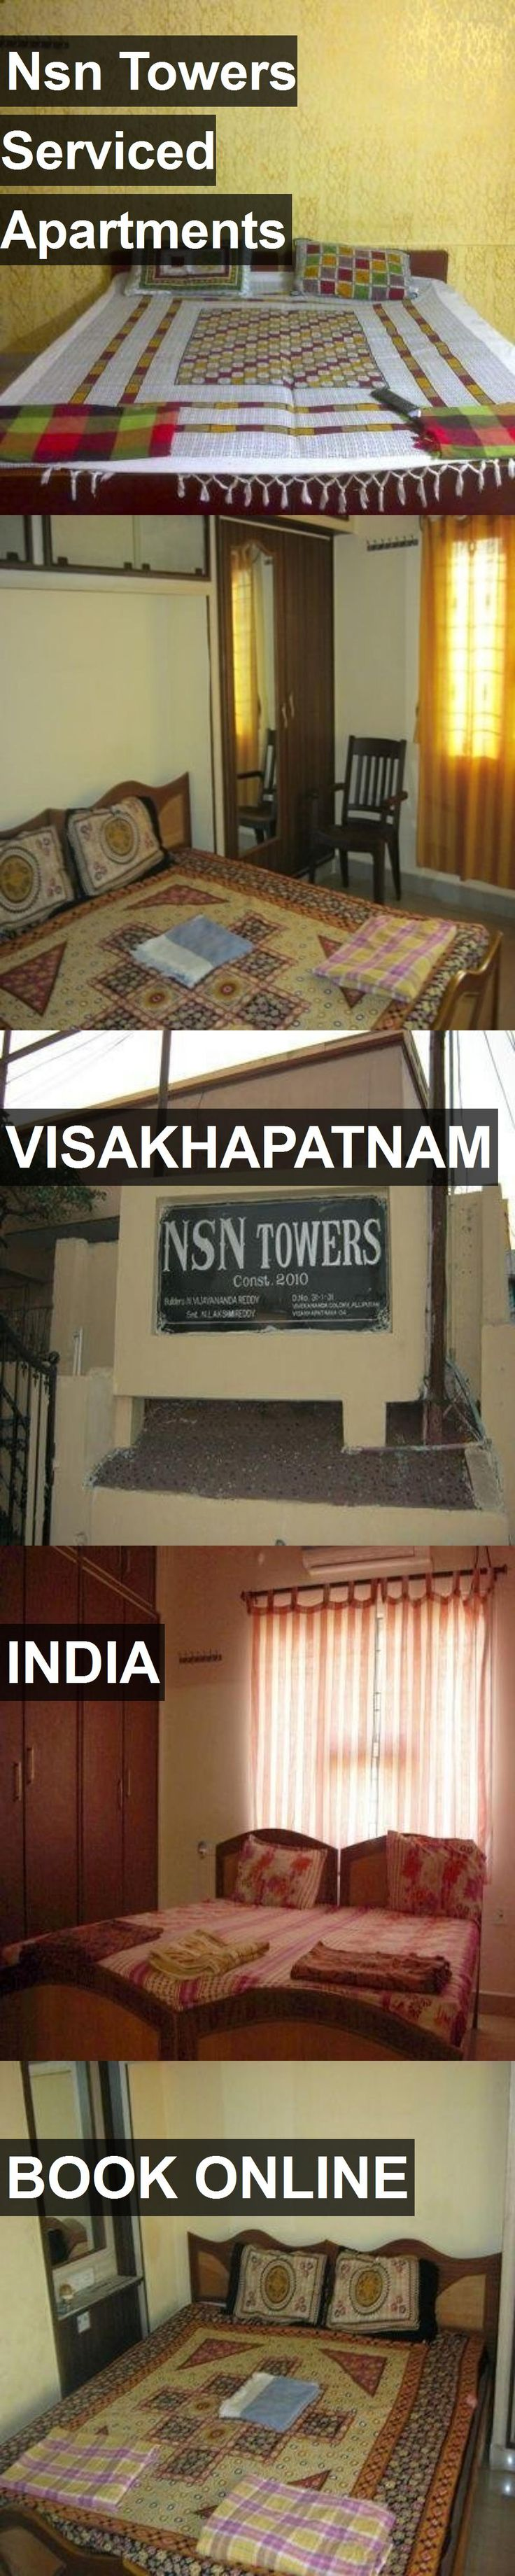 Nsn Towers Serviced Apartments in Visakhapatnam, India. For more information, photos, reviews and best prices please follow the link. #India #Visakhapatnam #travel #vacation #apartment